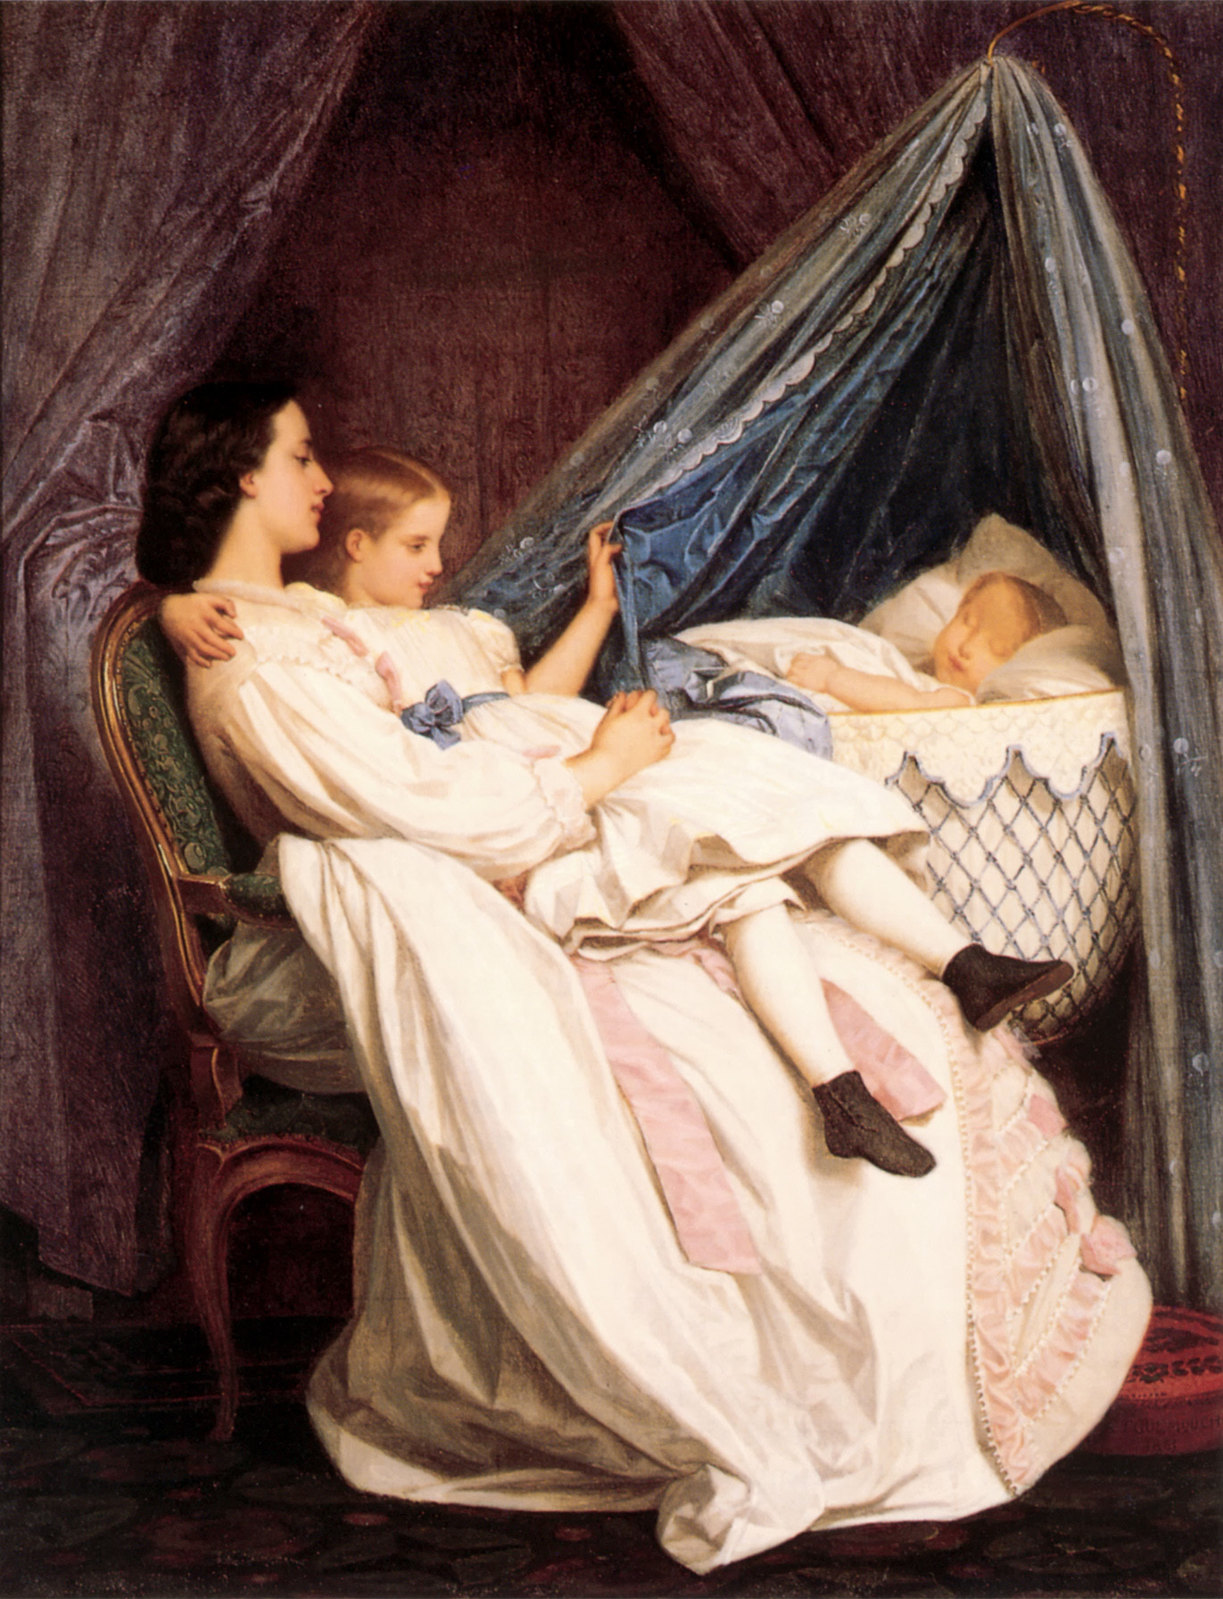 The New Arrival by Auguste Toulmouche, 1861